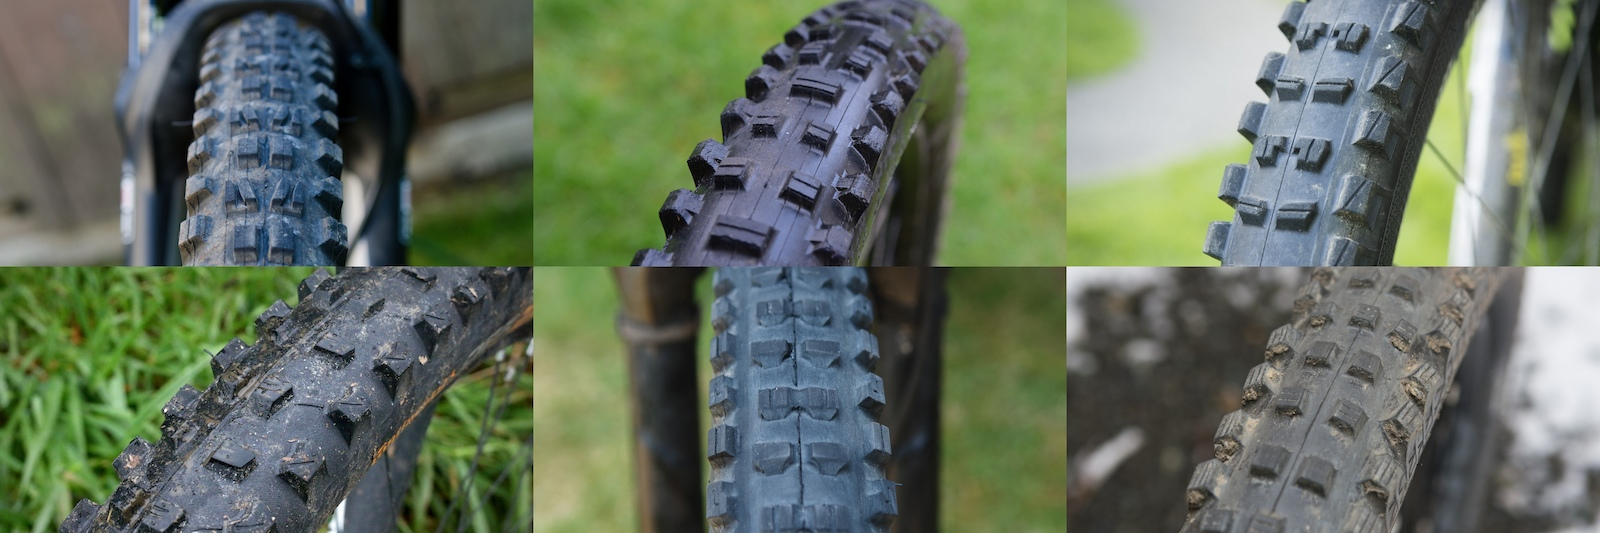 Top Pneu St Priest Ridden And Rated Six Tires For Rugged Trails Pinkbike